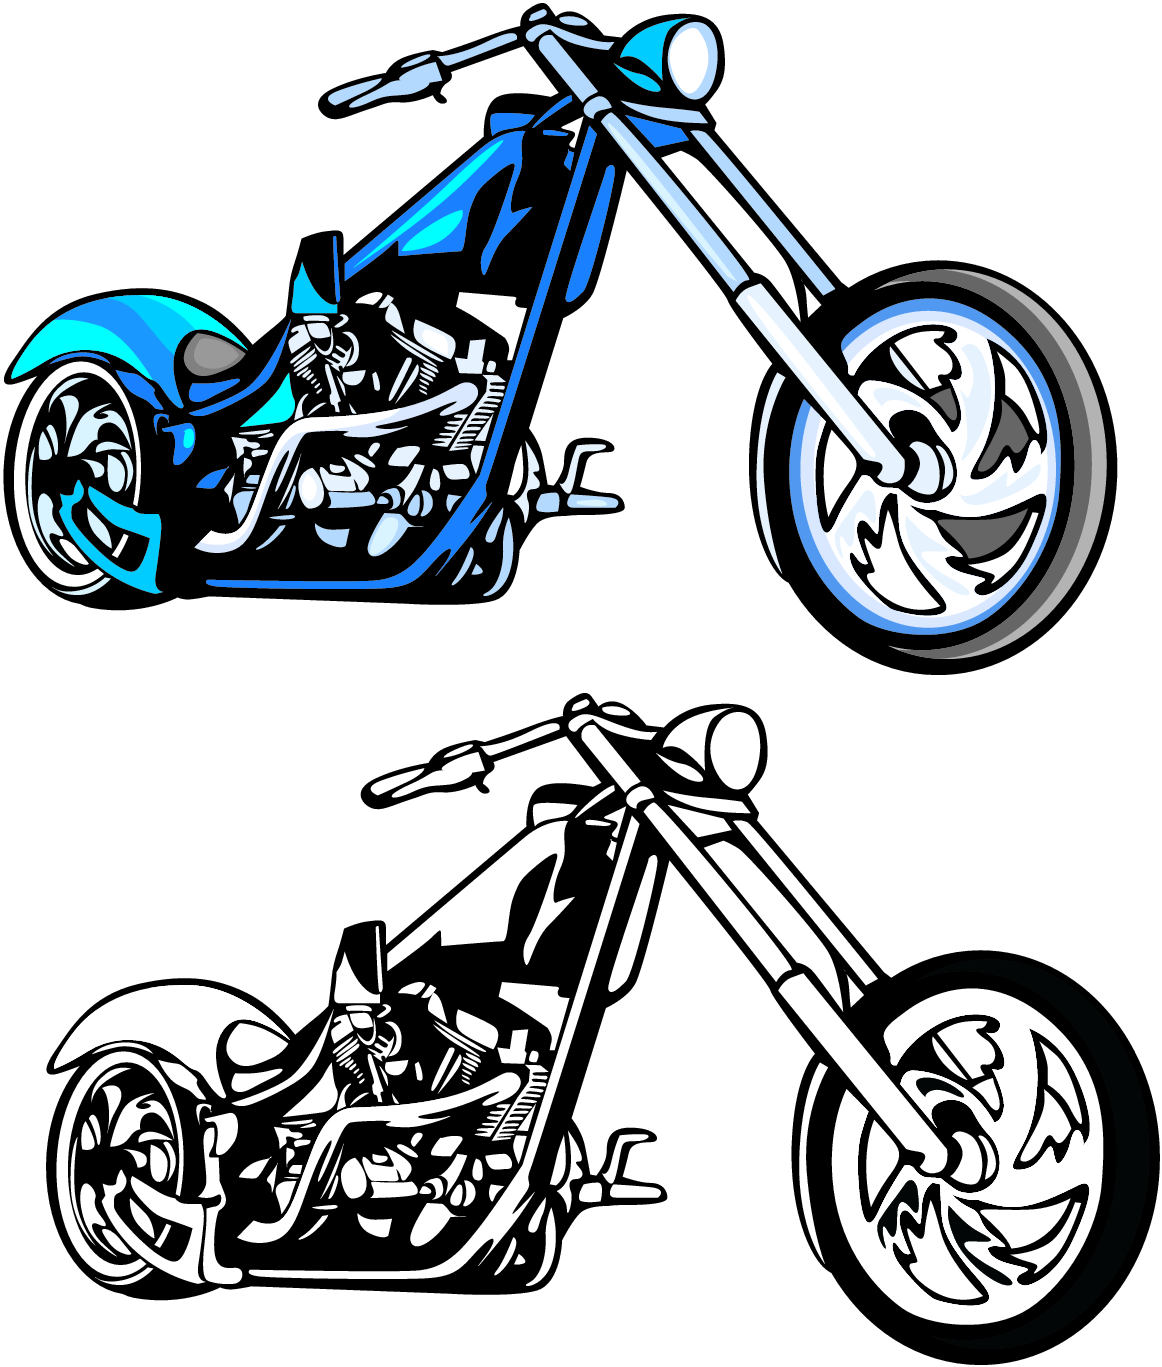 motorcycle silhouette clip art free at getdrawings com free for rh getdrawings com clip art motorcycles free clip art motorcycle helmets